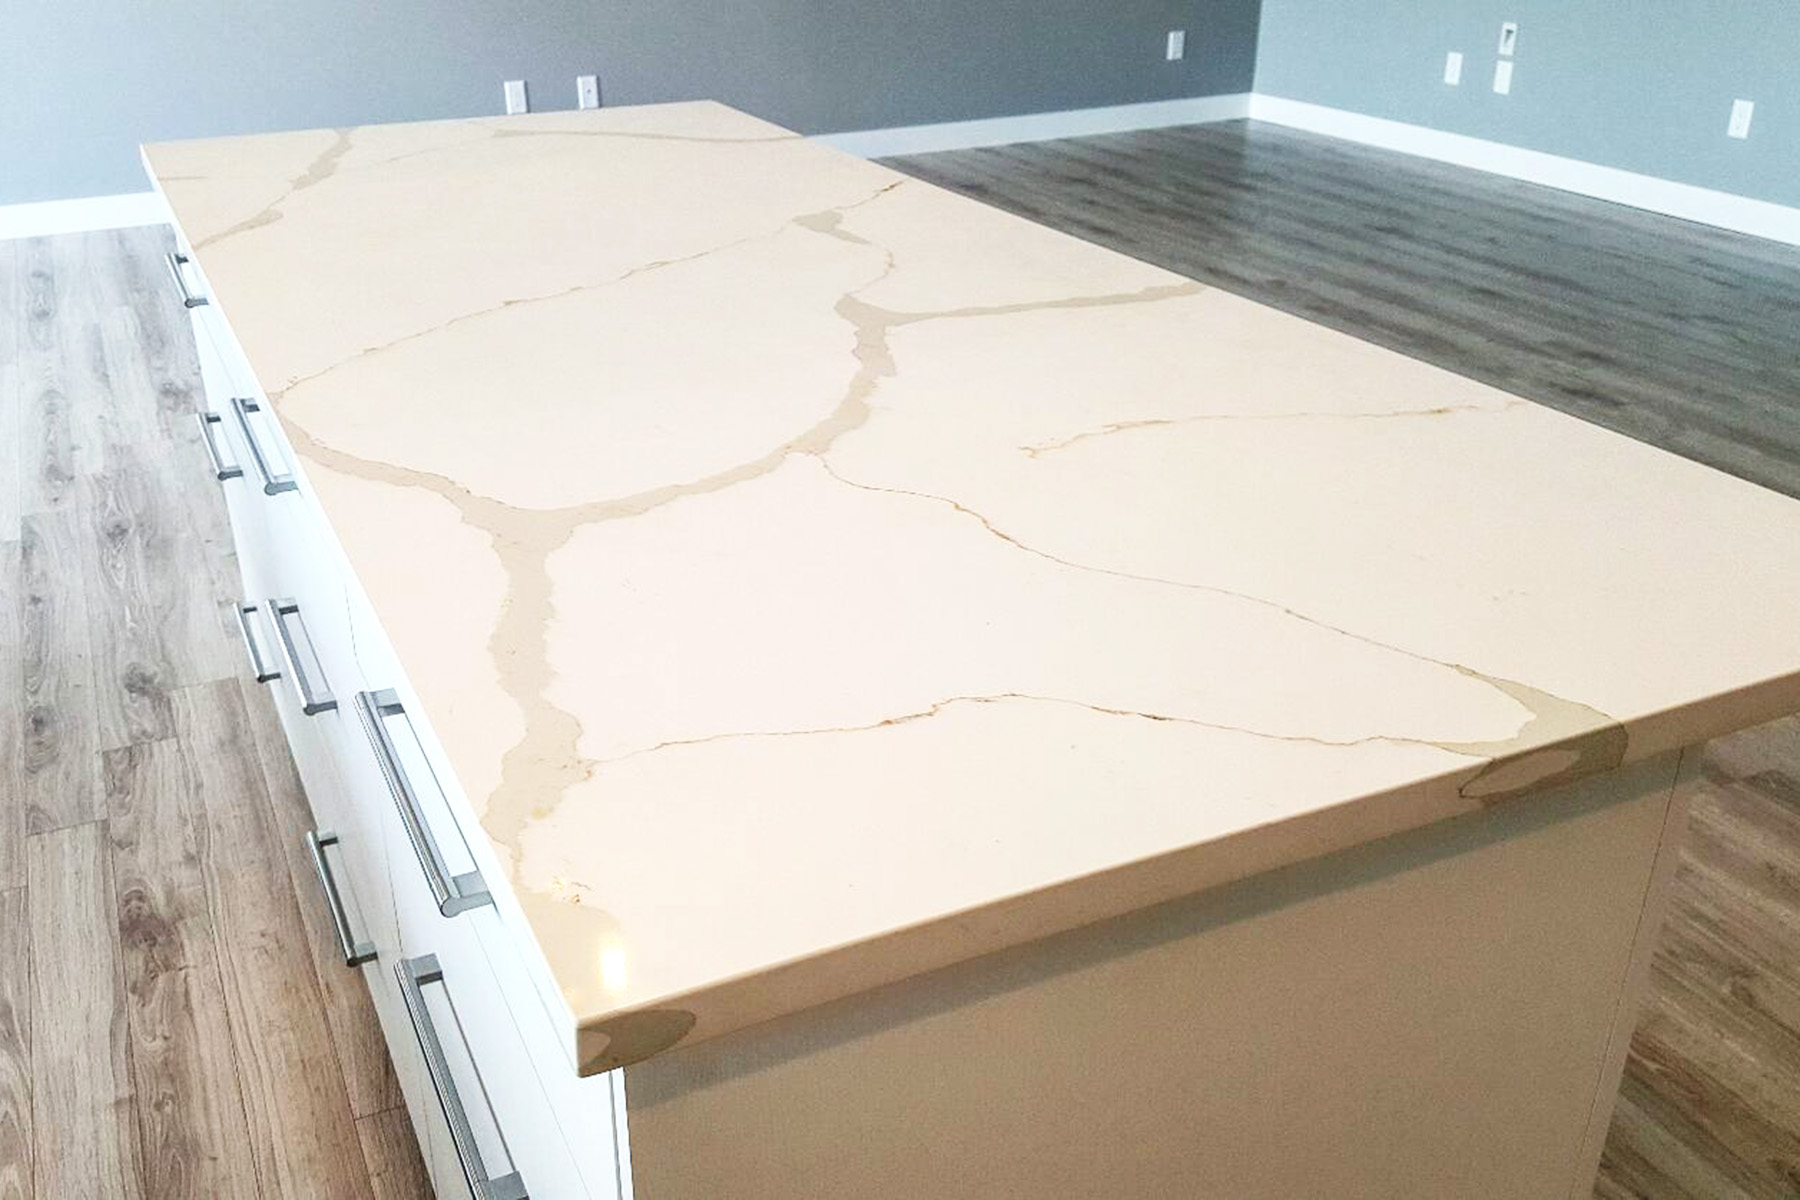 Limestone Countertops Vs Granite Quartz Vs Granite Countertops Vanway Kitchen 43 Bath